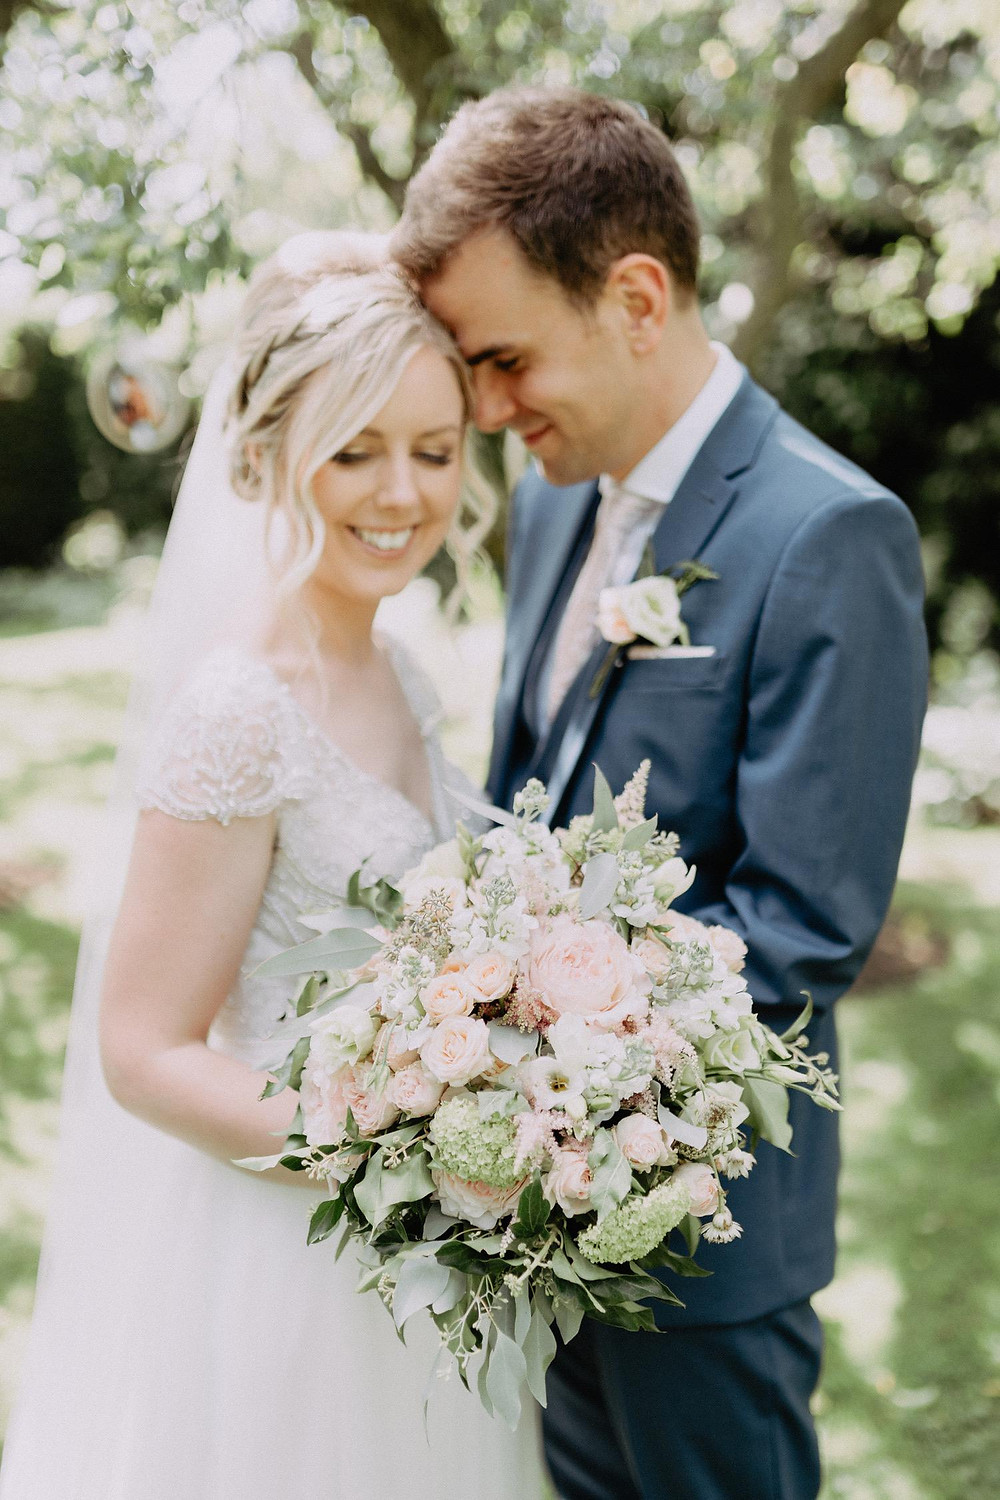 Bride and groom at crook hall gardens. image by paul liddement